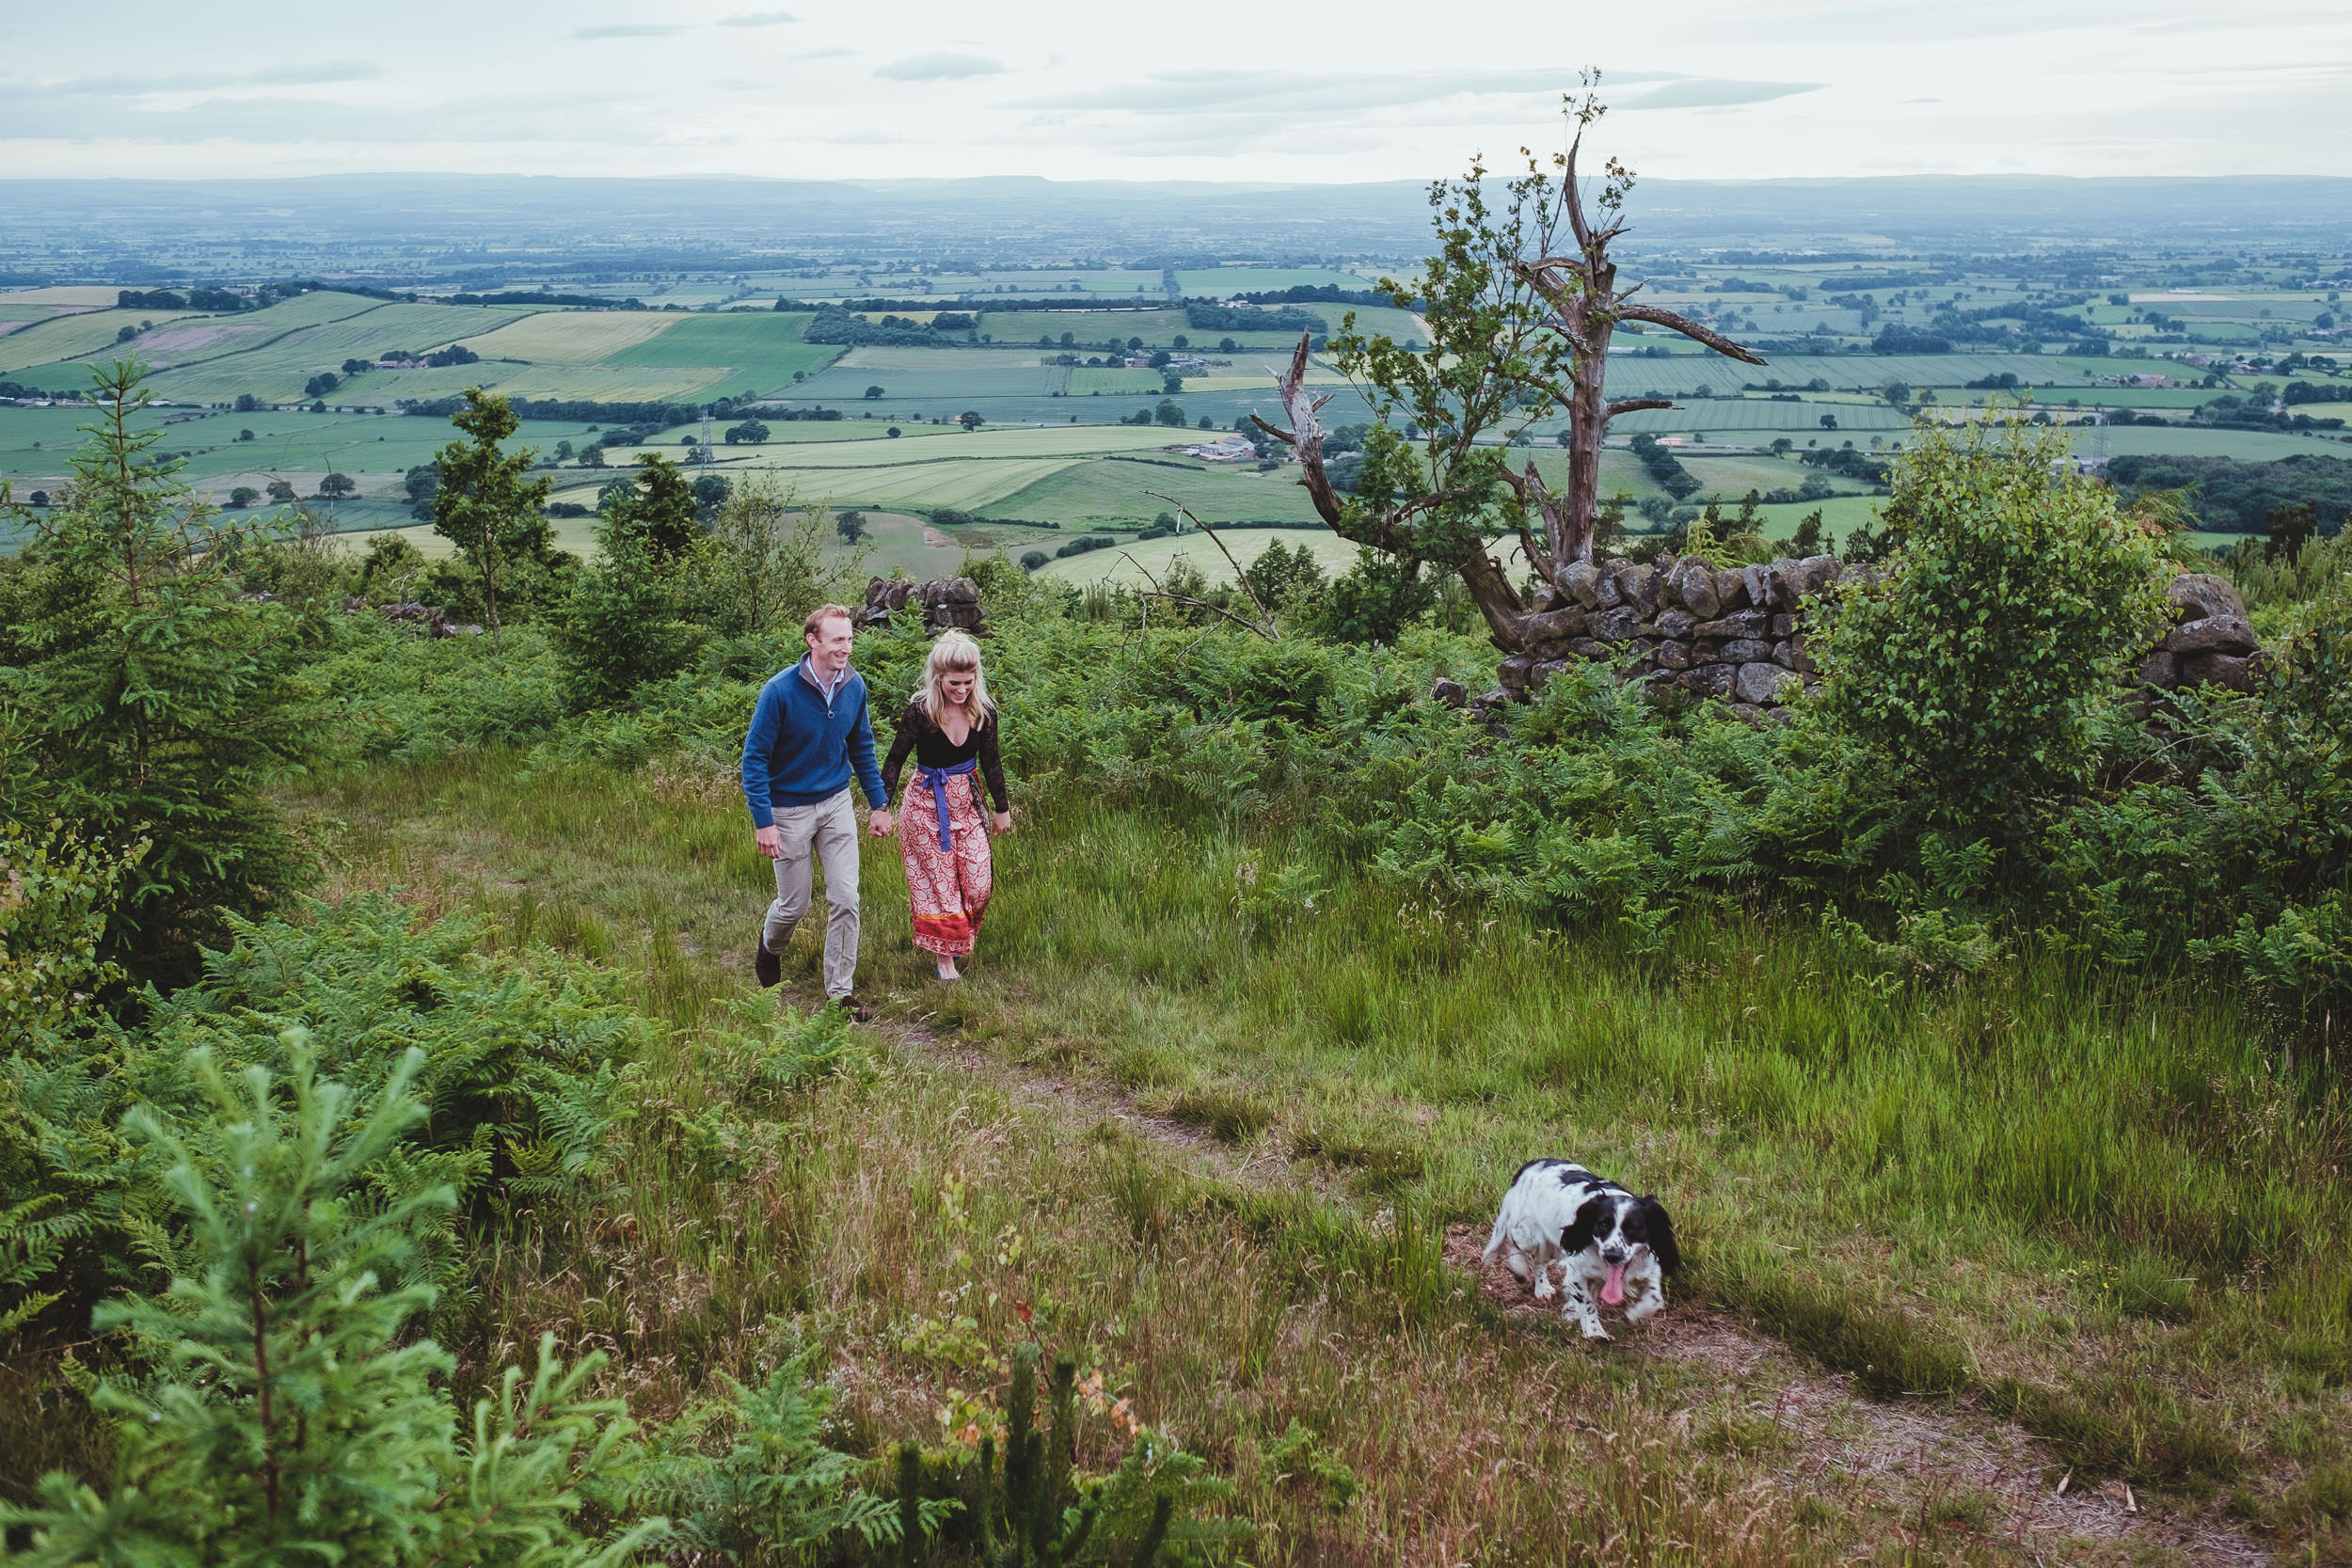 A couple walk hand in hand up a country path overlooking the Yorkshire countryside